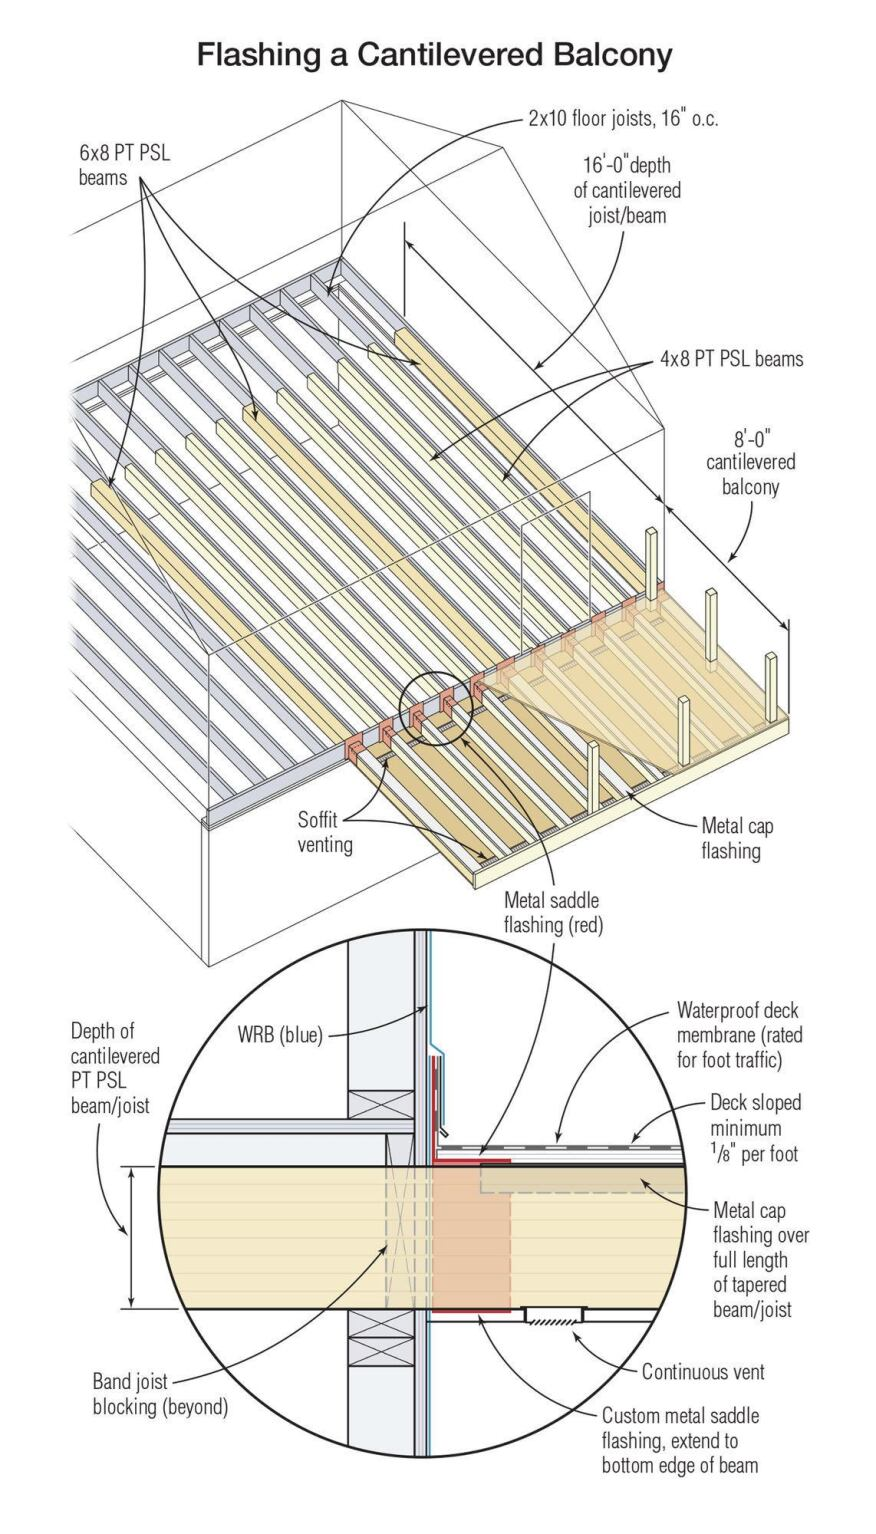 Careful flashing is a critical component in any balcony design. Here each beam is protected with metal saddle and cap flashing, which in turn is integrated with the WRB on the wall and the floor's waterproofing membrane. Continuous soffit vents underneath allow air to flow through the assembly, essential if the balcony is enclosed.